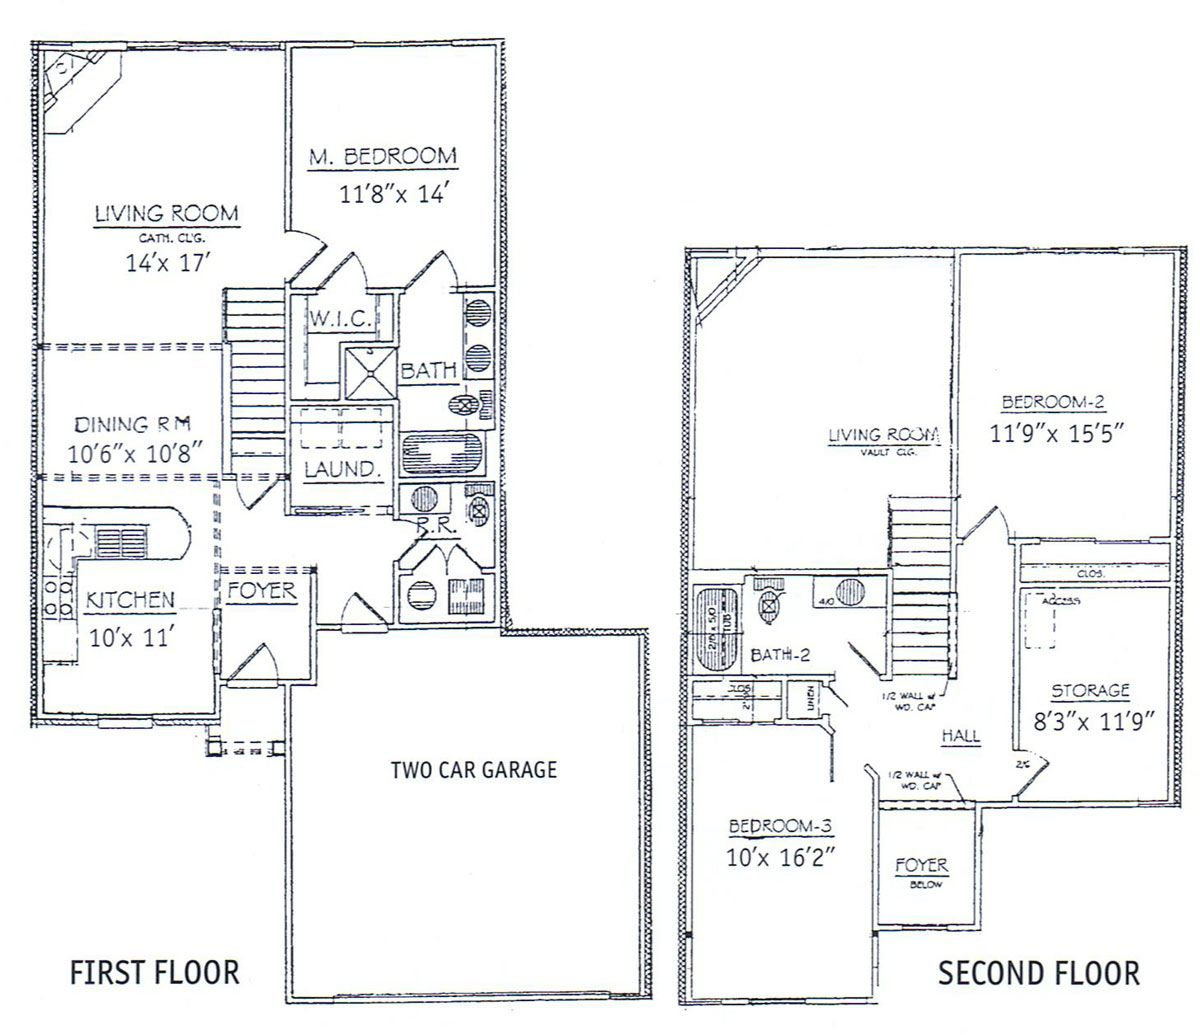 3 bedrooms floor plans 2 story bdrm basement the two for 3 bedroom floor plans